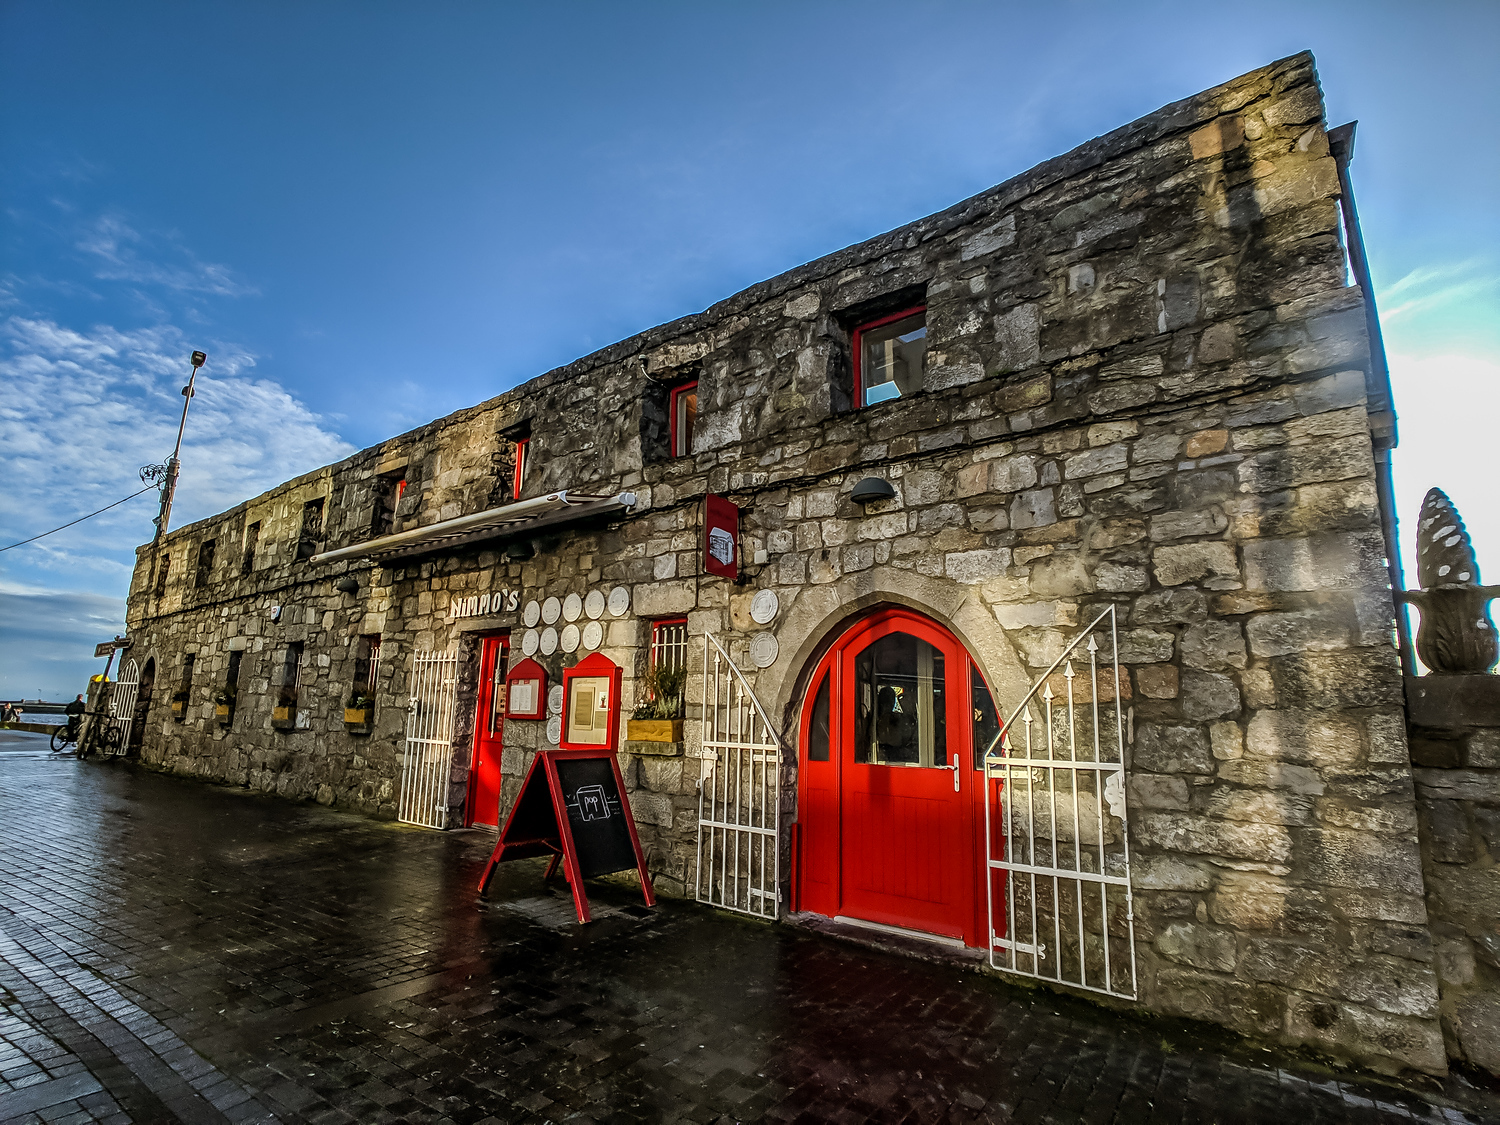 Exterior of Ard Bia, one of the most popular restaurants in Galway Ireland.